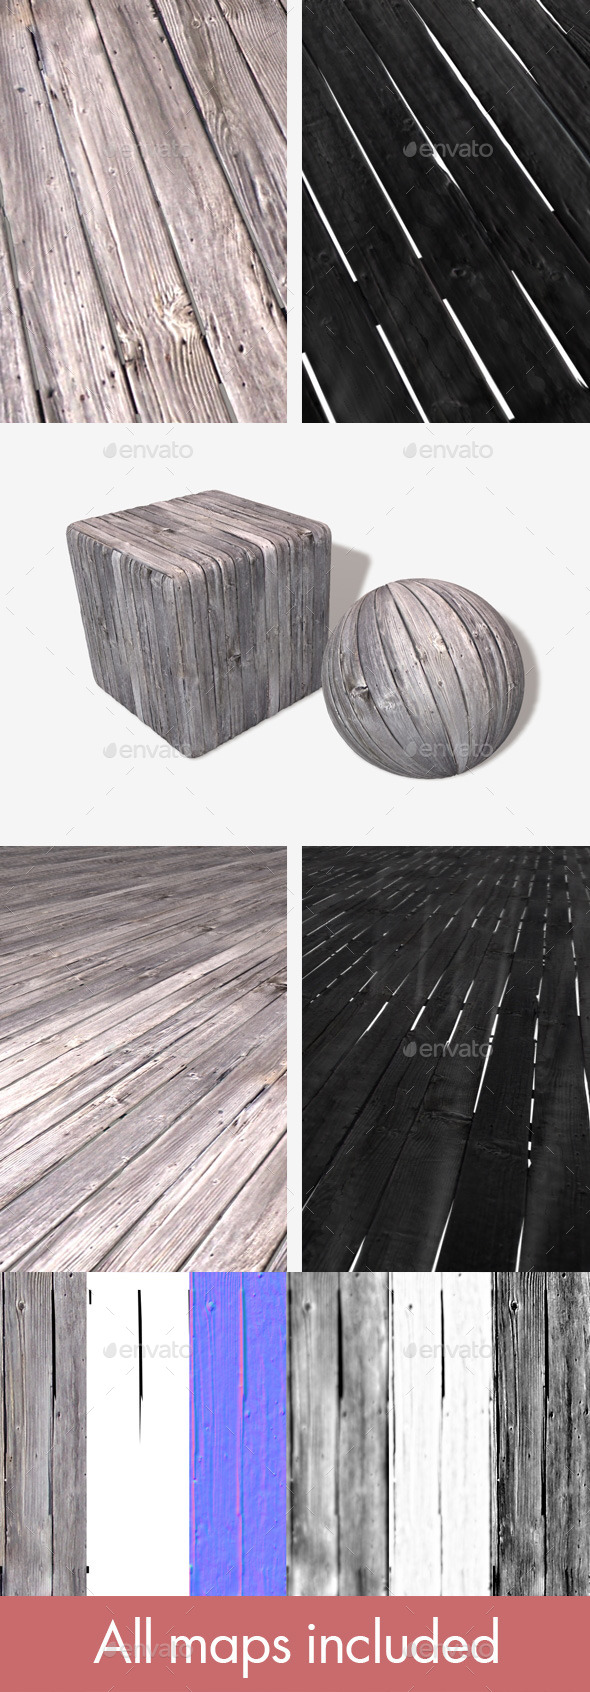 Broken Wooden Planks Seamless Texture - 3DOcean Item for Sale